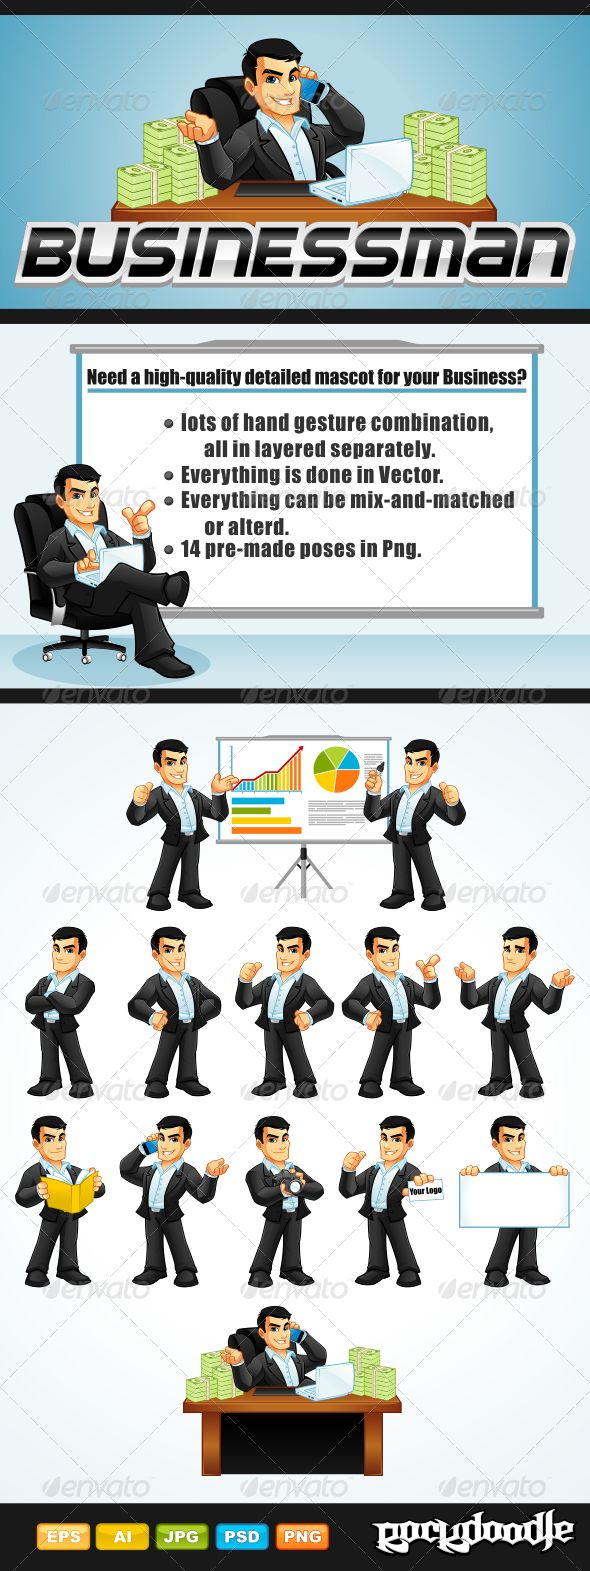 Businessman Mascot Pack high-quality detailed mascot available with 14 poses but you can also create more than 14 poses by combining some elements of arm action poses and face expressions.